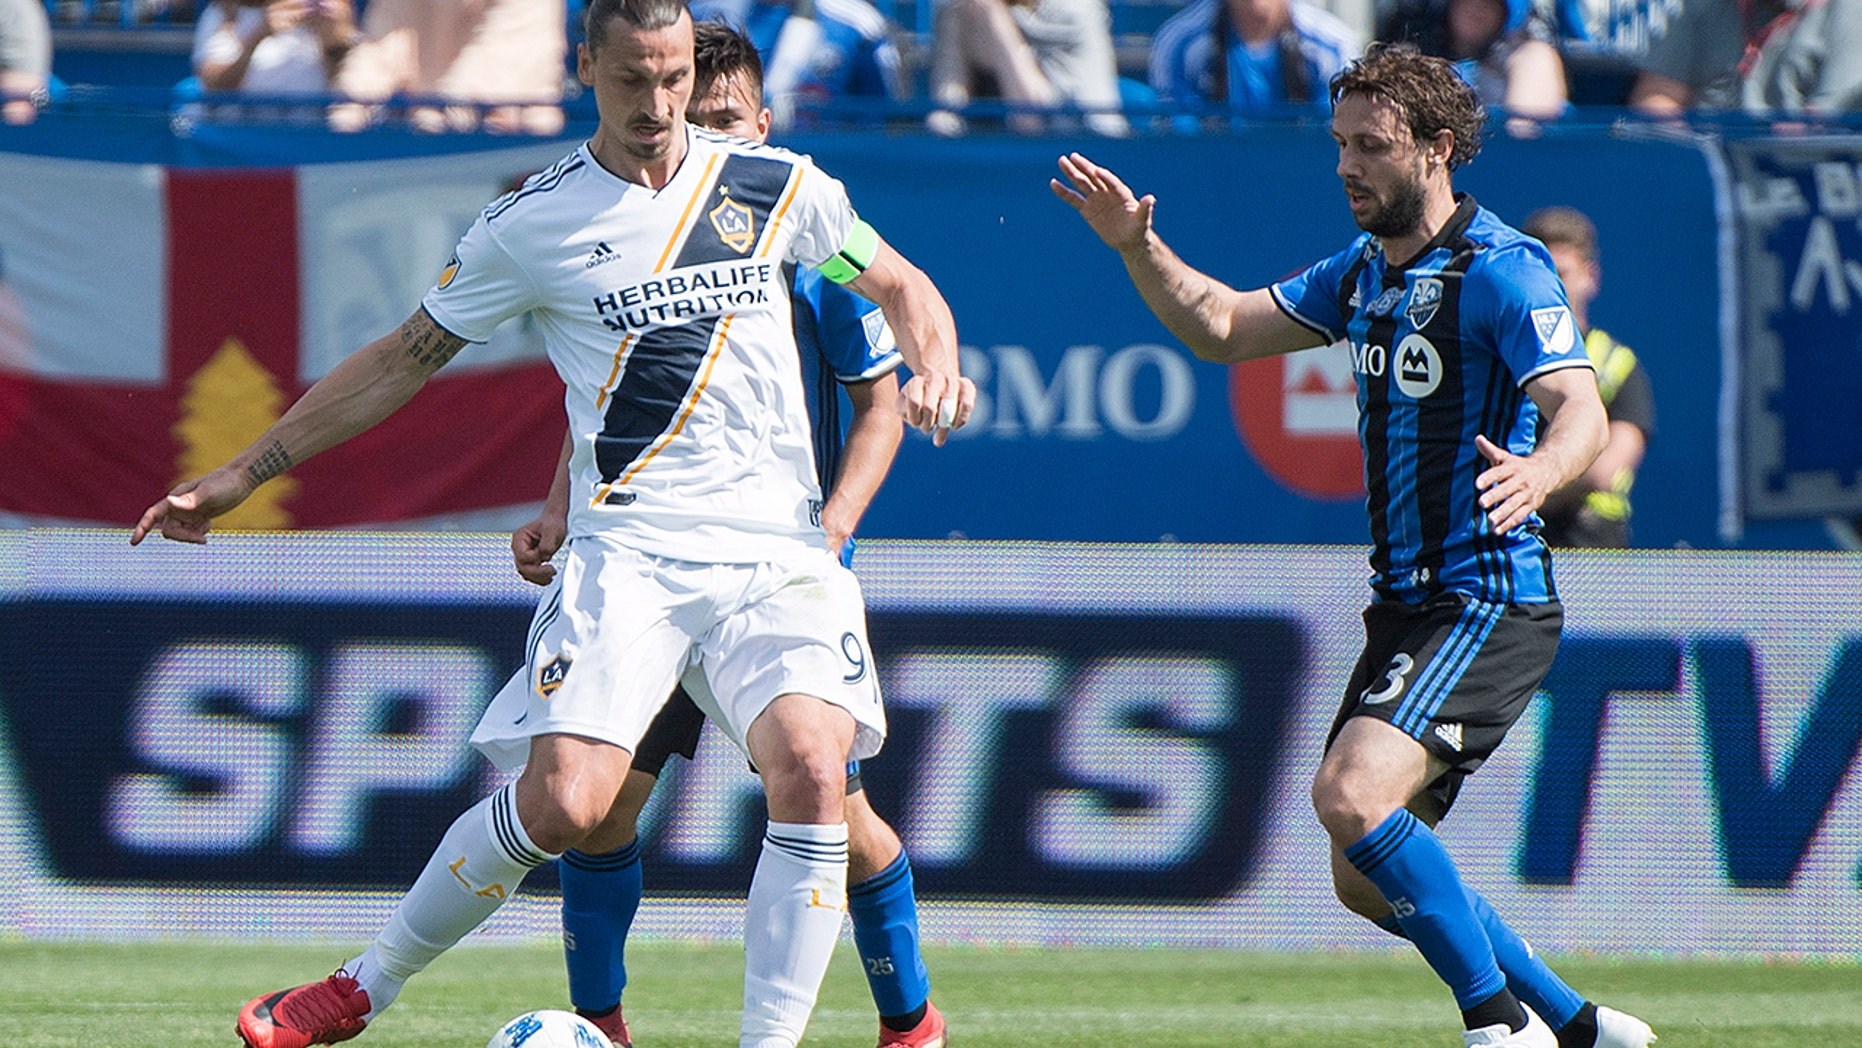 Montreal Impact's Marco Donadel moves in on Los Angeles Galaxy's Zlatan Ibrahimovic, left, during the first half an MLS soccer match in Montreal.